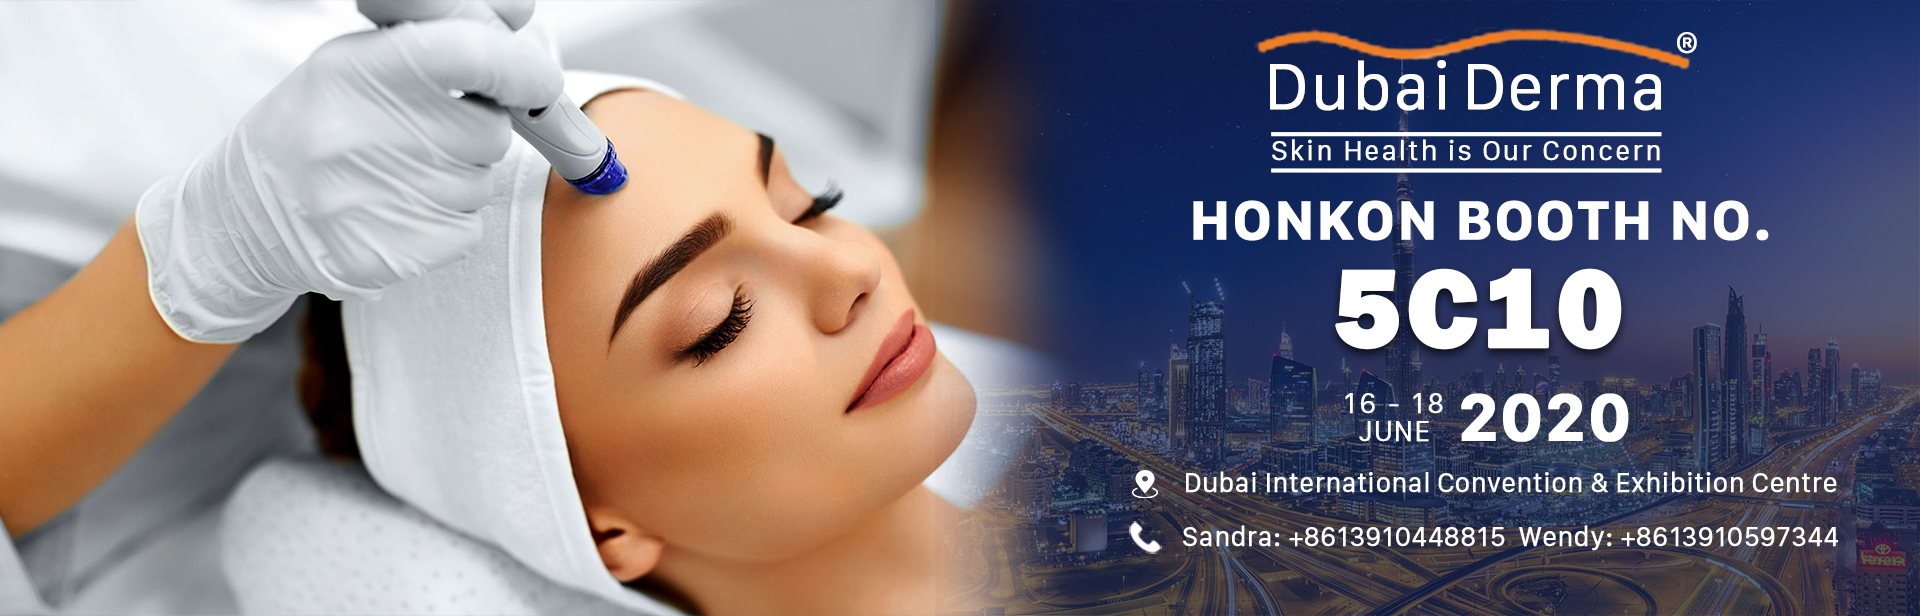 https://www.honkonglobal.com/news/the-20th-edition-of-dubai-world-dermatology-and-laser-conference-exhibition/